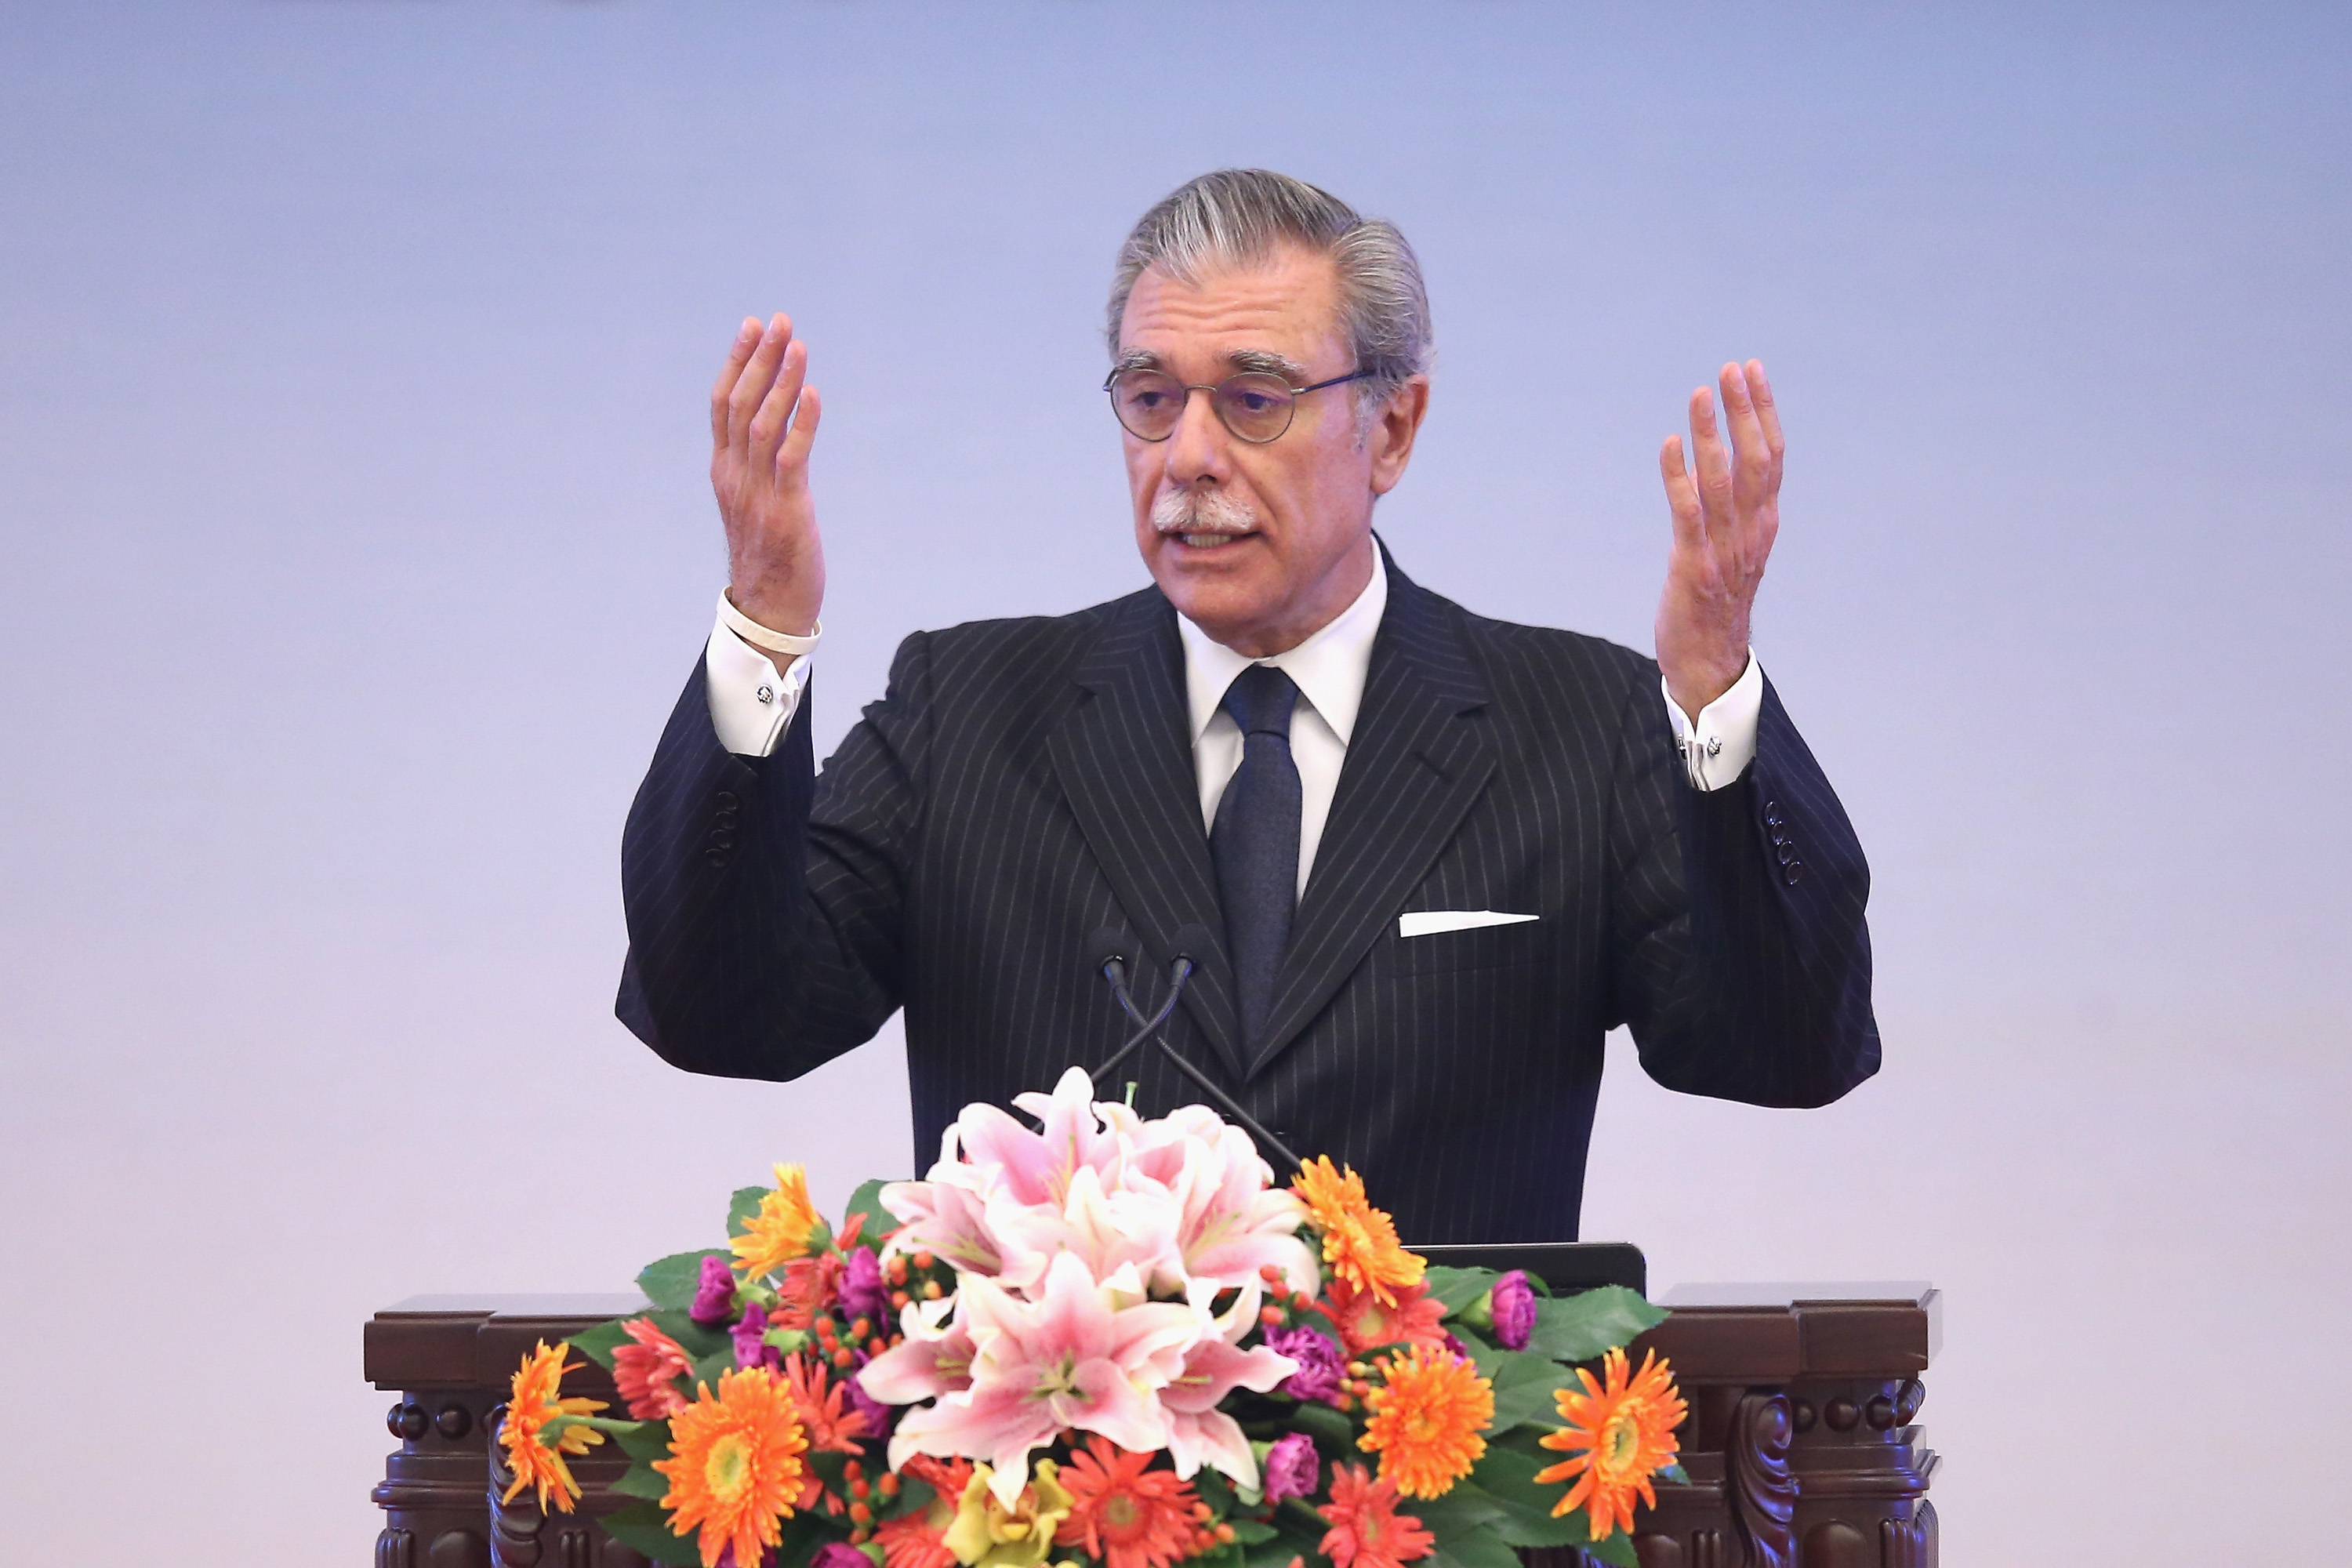 Former U.S. Secretary of Commerce Carlos Gutierrez gives a speech during the opening session of the 1st China Conference of Quality at The Great Hall Of The People on Sept. 15, 2014 in Beijing.